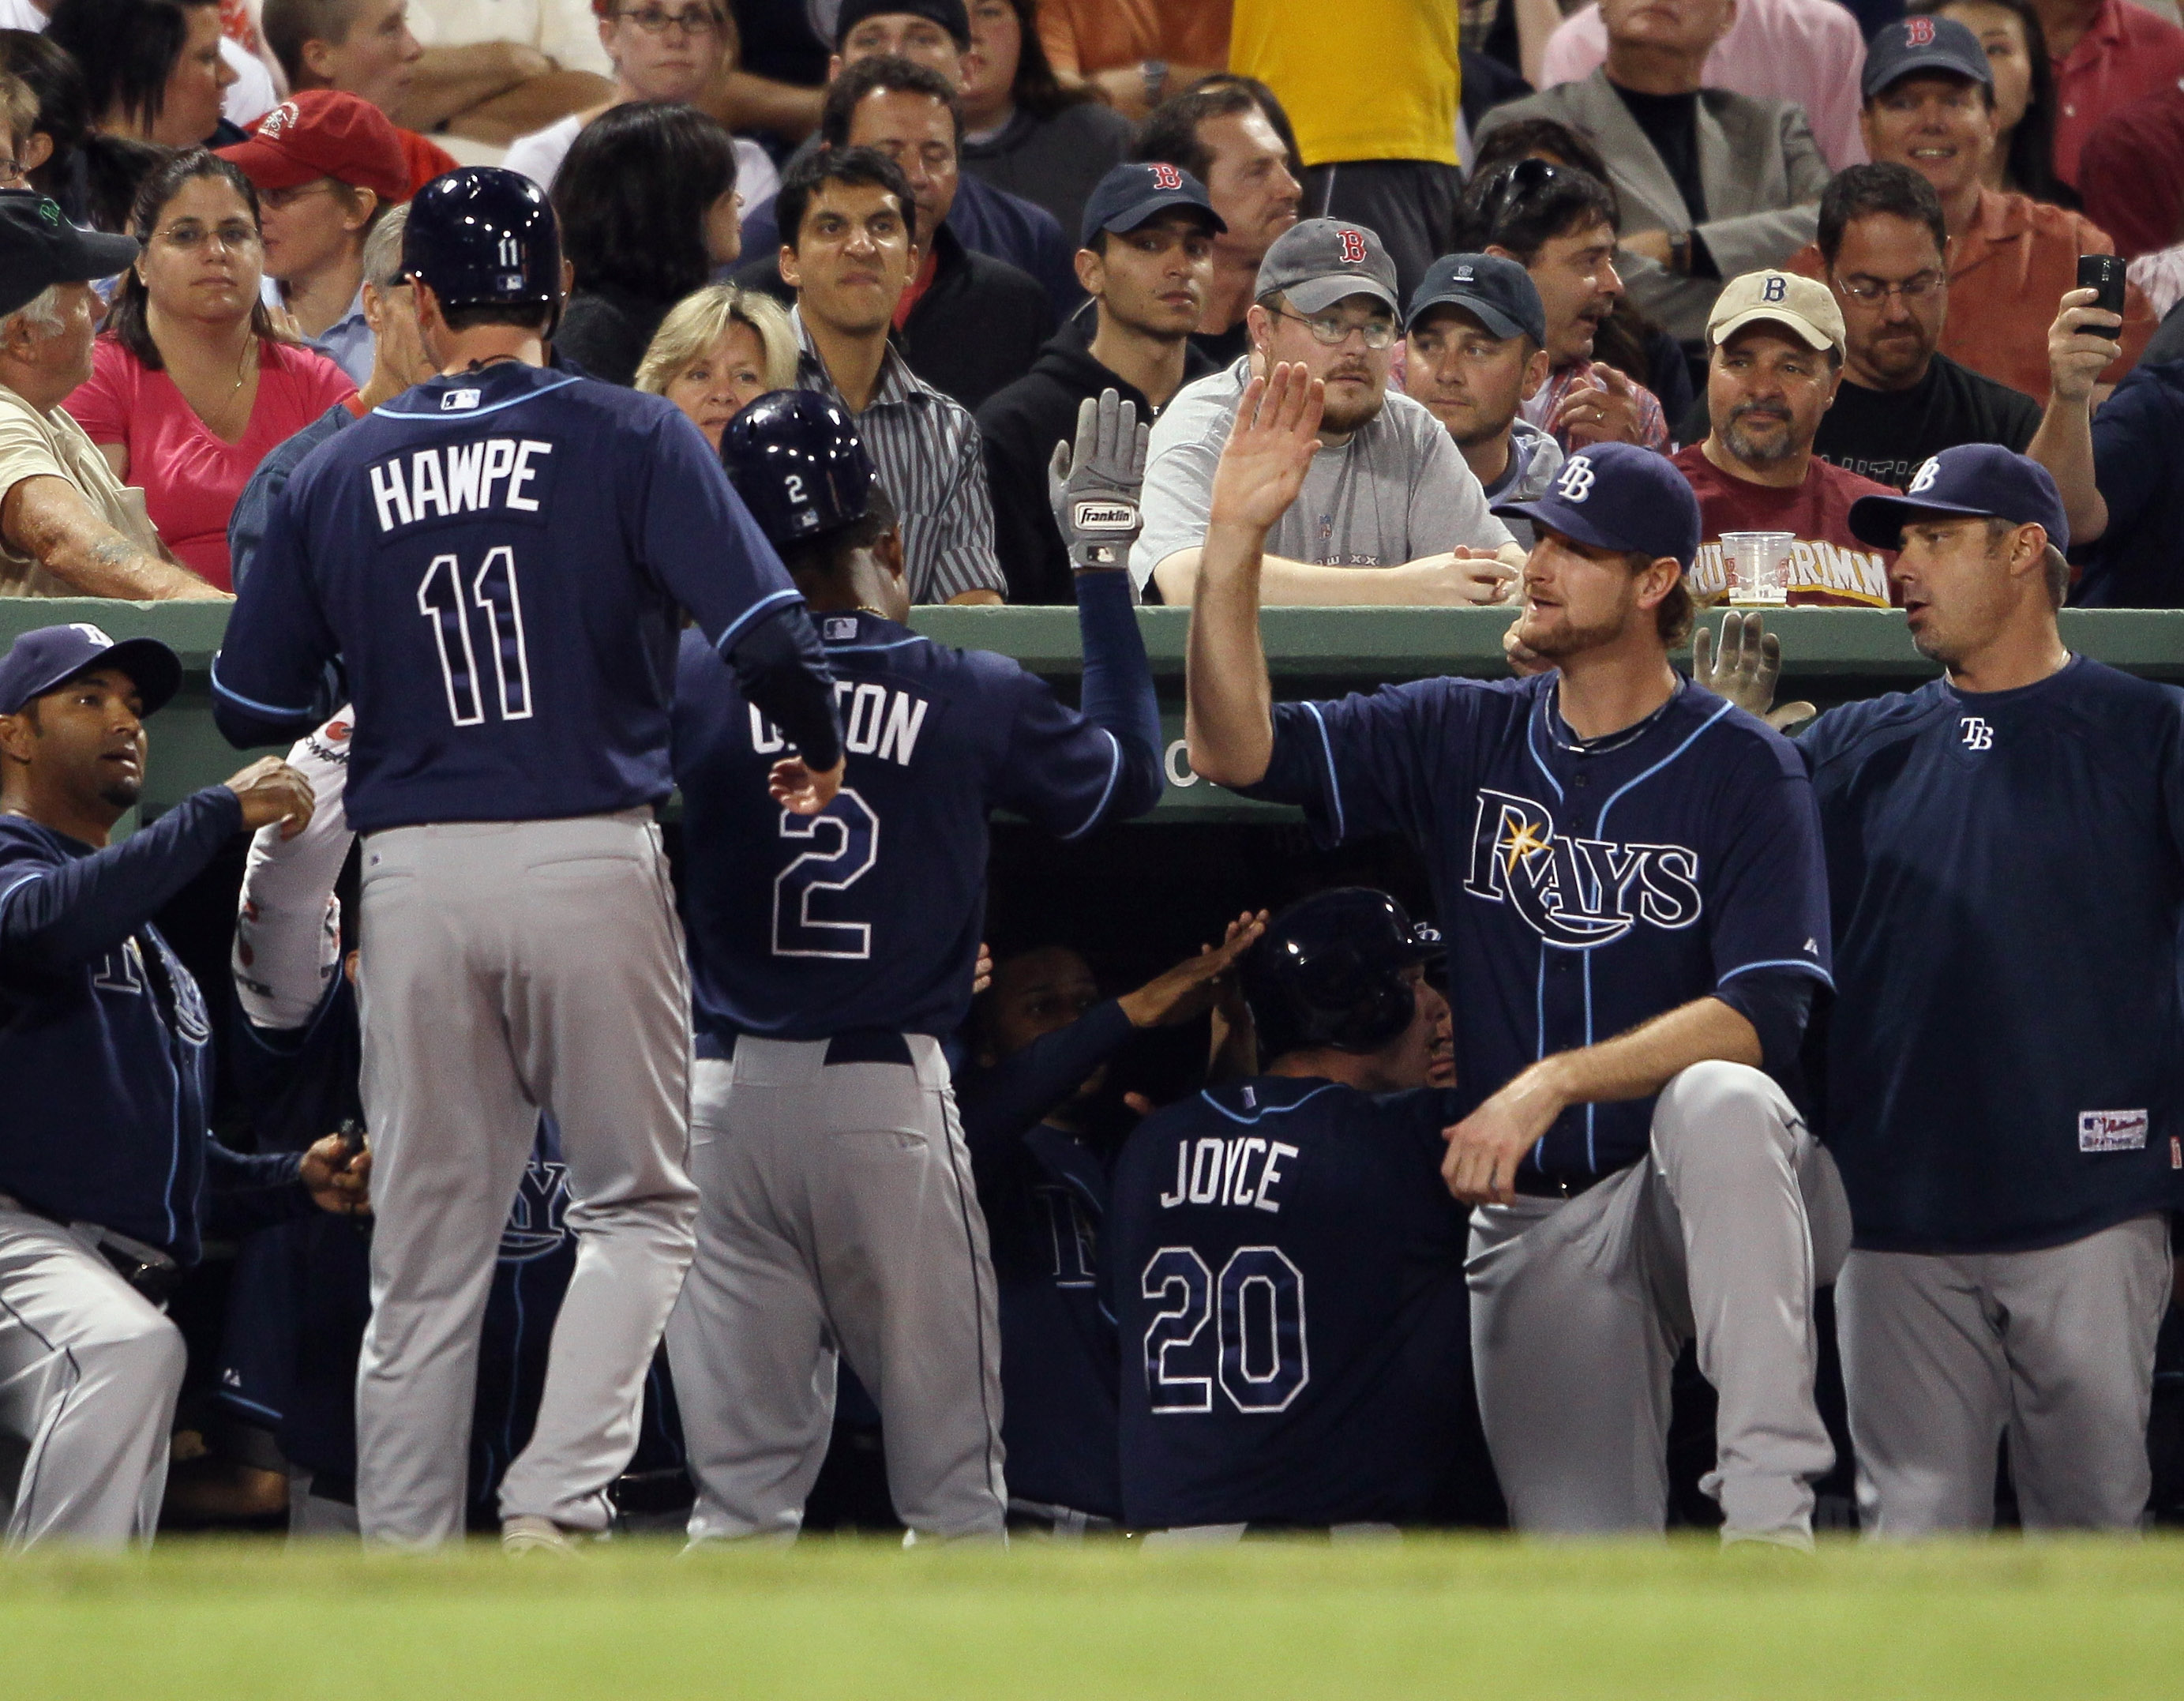 BOSTON - SEPTEMBER 08:  B.J. Upton #2 of the Tampa Bay Rays is congratulated by teamamtes after he hit a three run homer in the second inning against the Boston Red Sox defends on September 8, 2010 at Fenway Park in Boston, Massachusetts.  (Photo by Elsa/